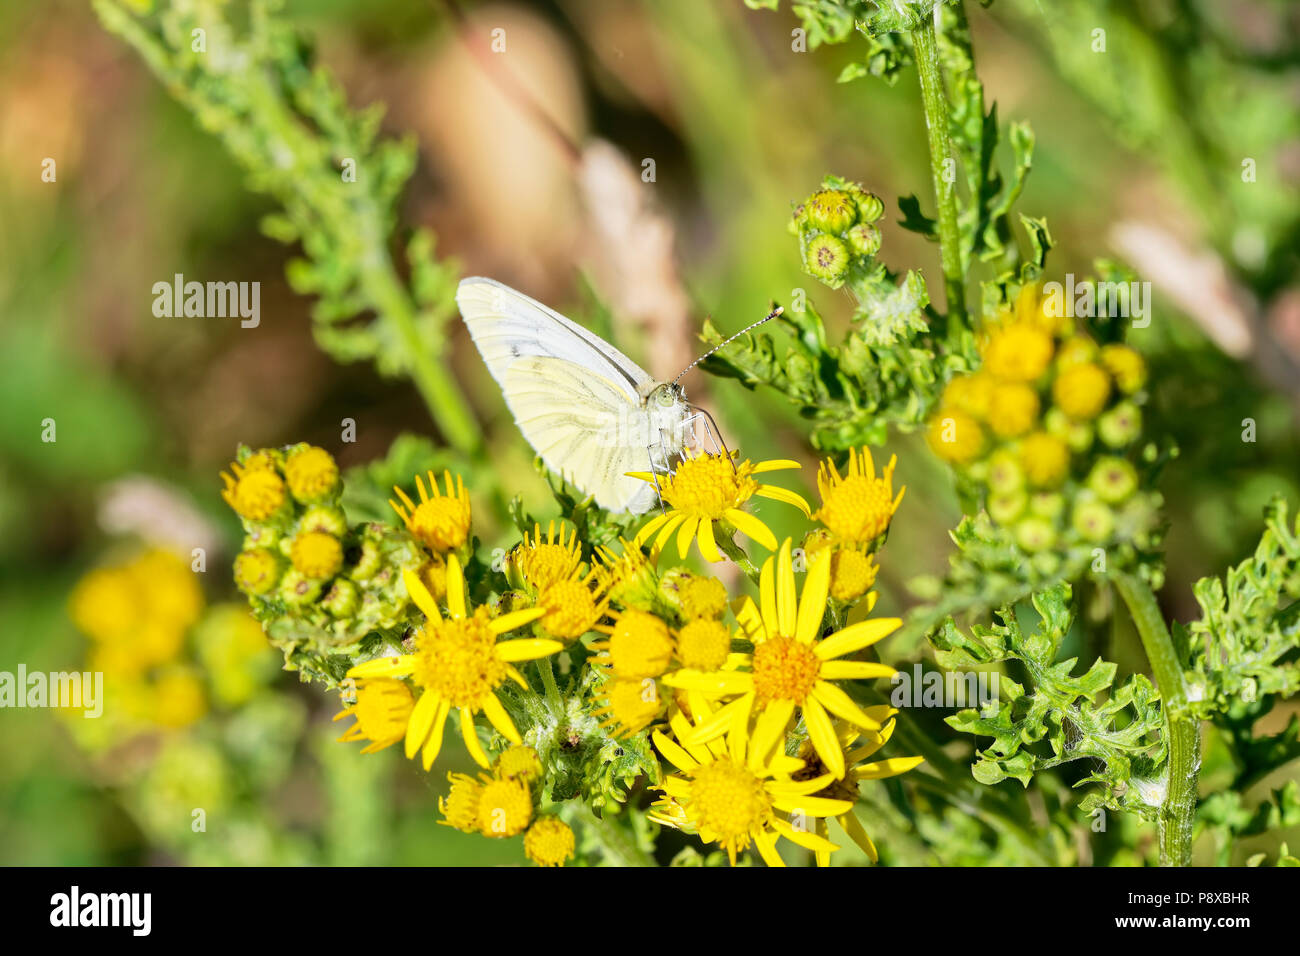 Close up of a Cabbage White butterfly feeding on nectar from a Groundsell flower - Stock Image